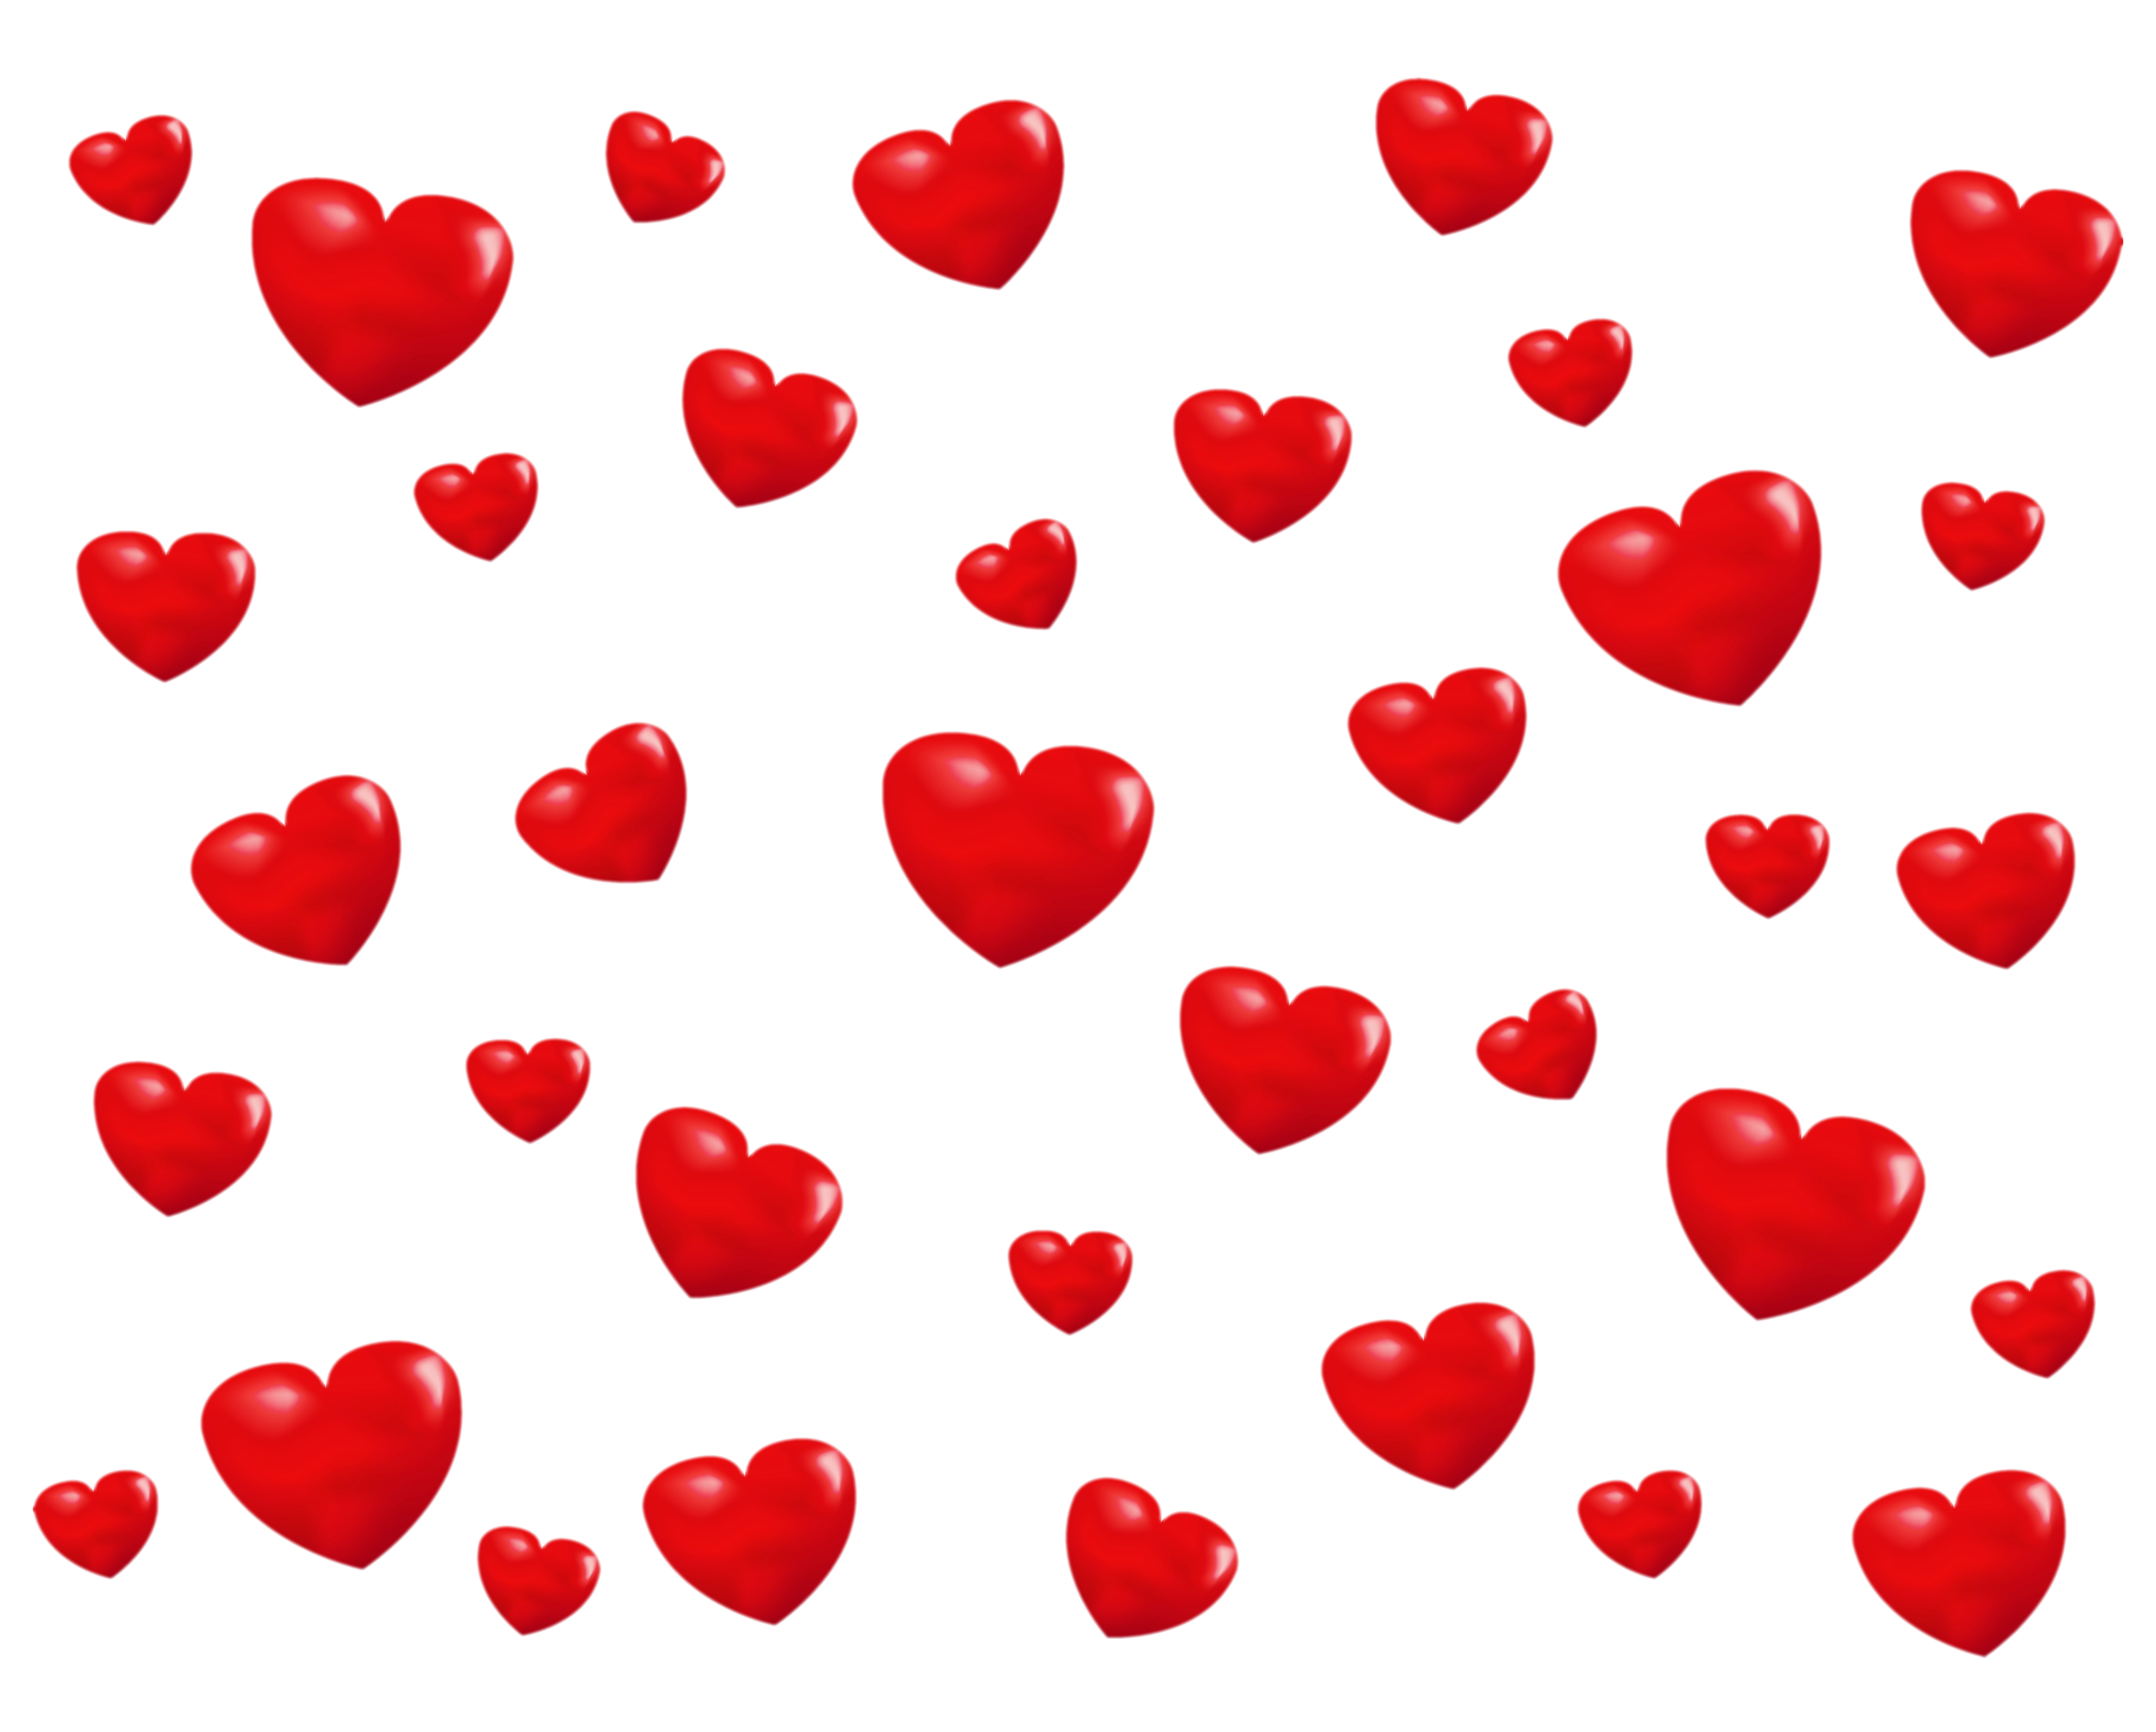 Heart background clipart vector freeuse stock Transparent PNG Background with Hearts | Gallery Yopriceville ... vector freeuse stock